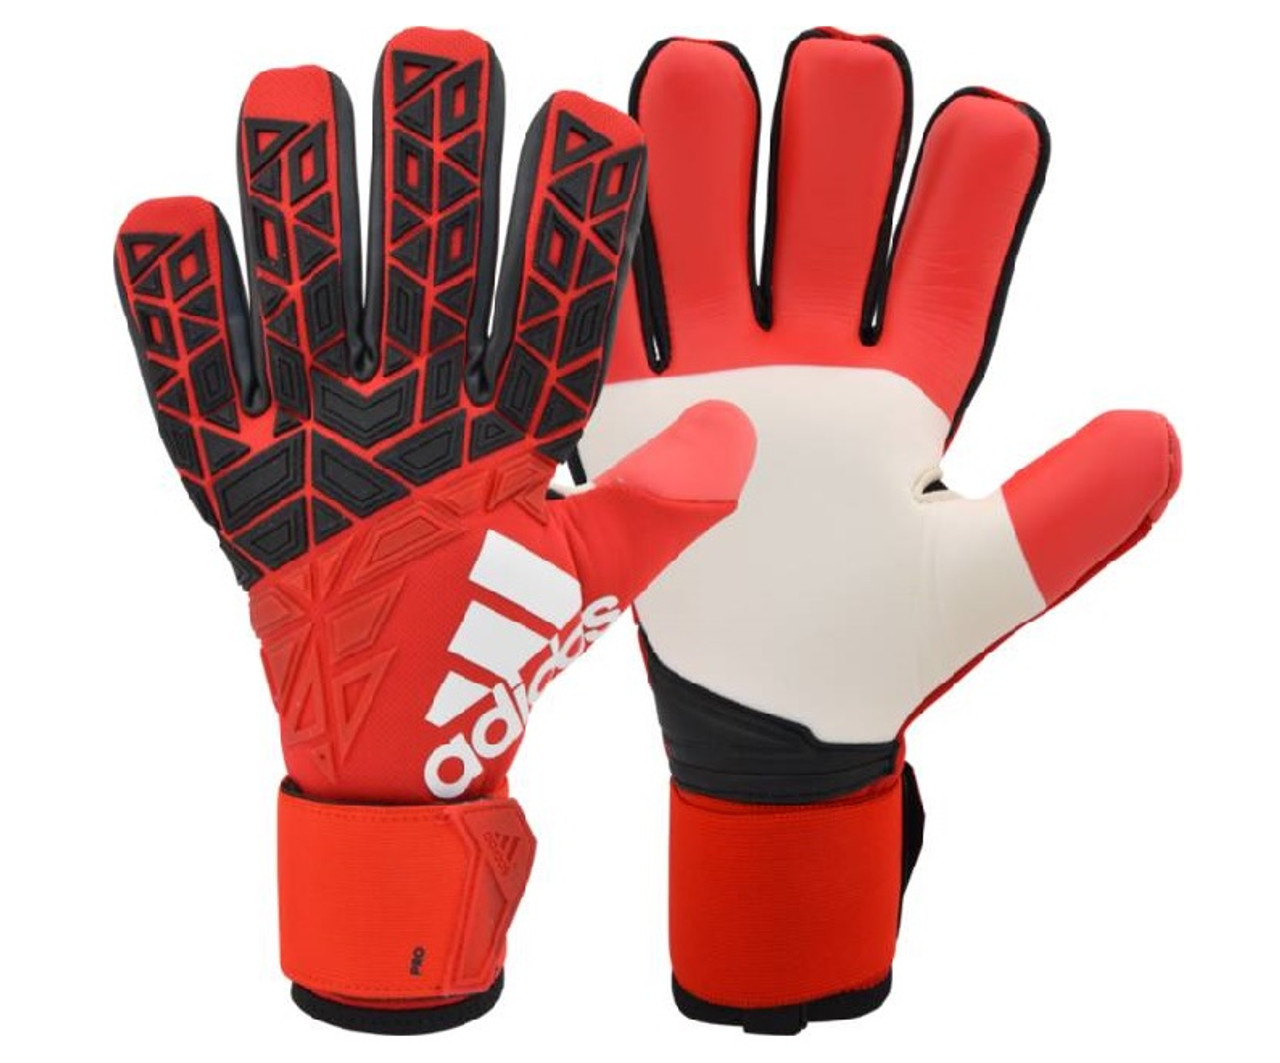 new arrival e416f 2cb7c adidas Ace Trans Pro GK Glove - Red Black White